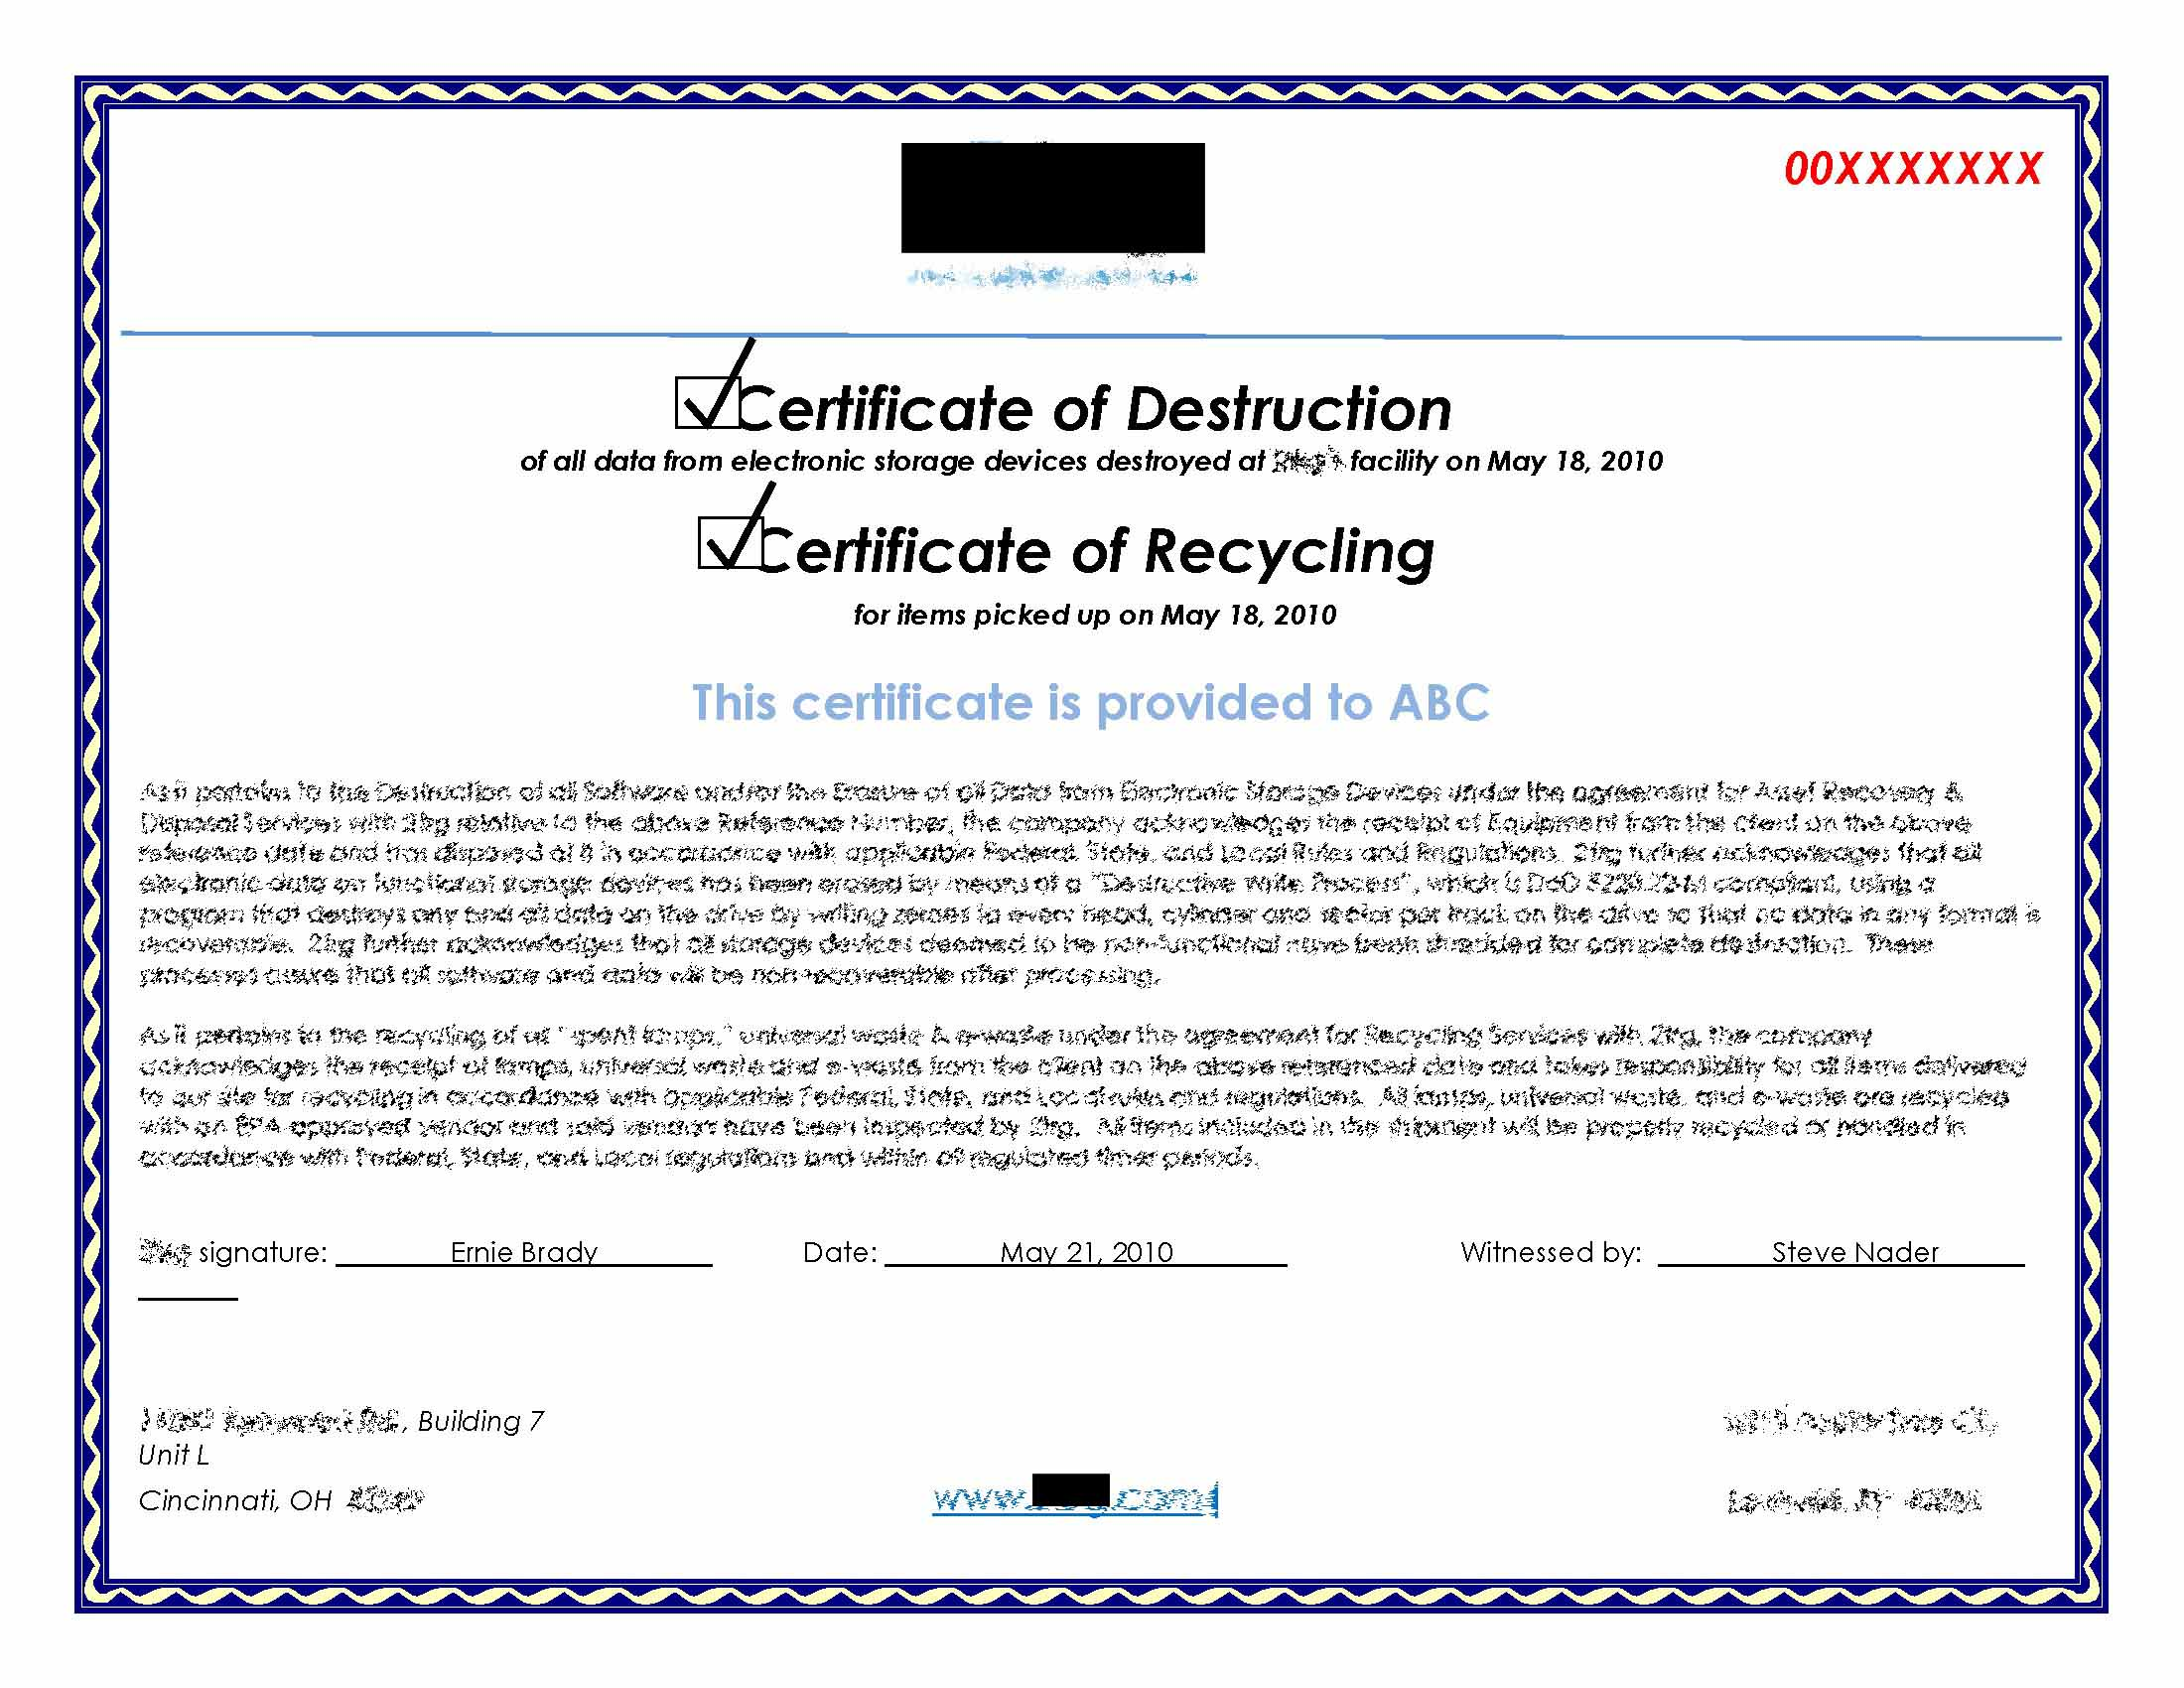 Hard drive destruction for copier mfp printers for Hard drive destruction certificate template